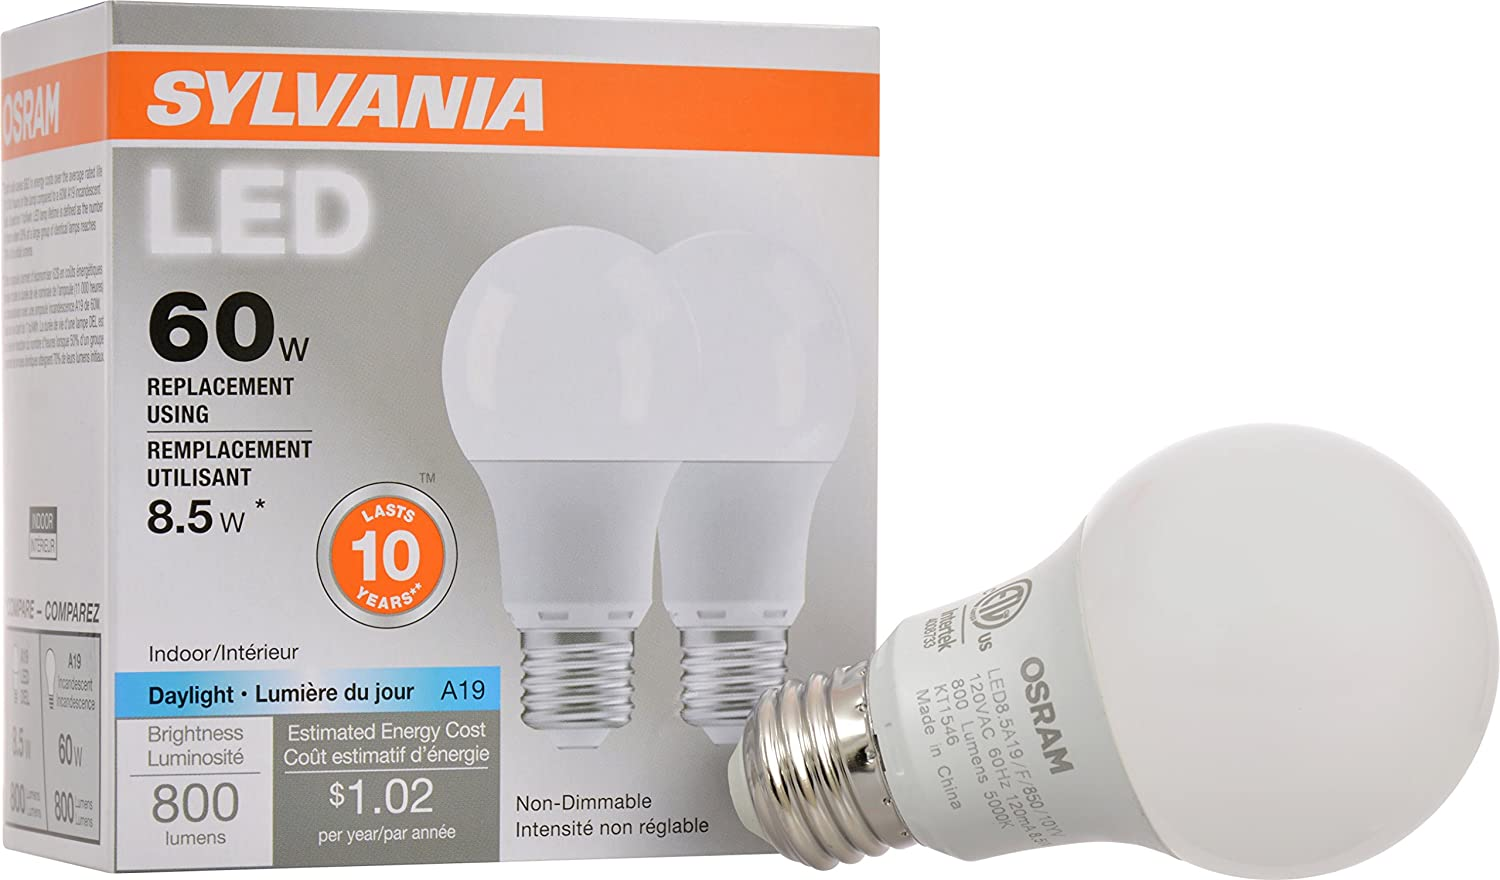 sylvania 60w equivalent led light bulb a19 lamp 2 pack daylight energy saving u0026 longer life medium base efficient 85w 5000k amazoncom - Sylvania Light Bulbs